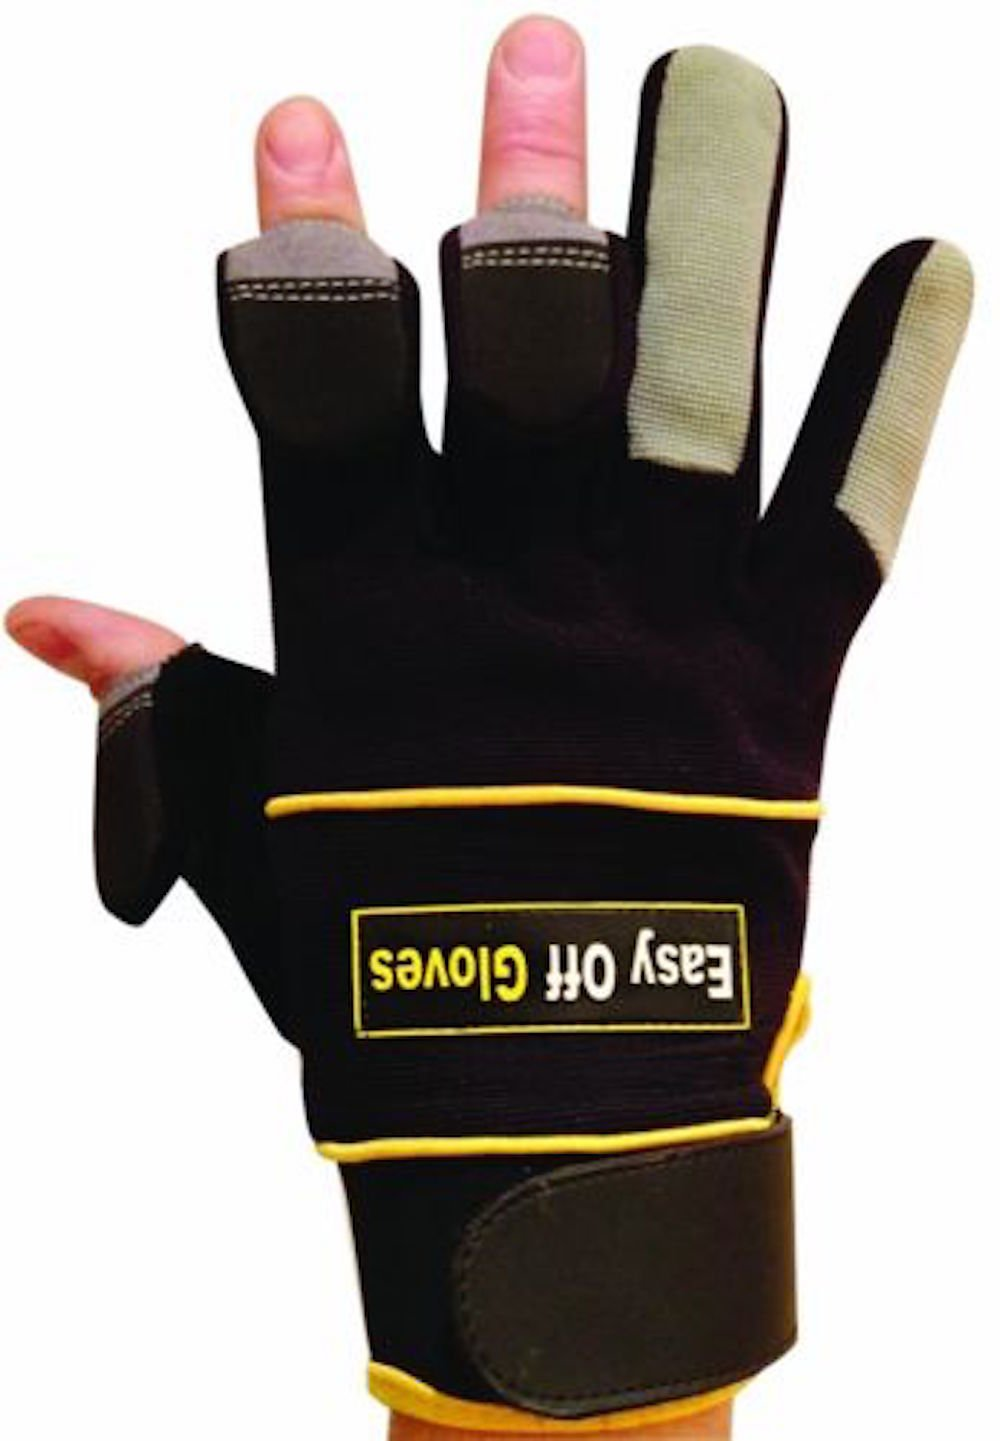 Fishing Gloves by Easy Off Gloves Specialist Ideal for Shooting Gardening DIY /& Work Wear The Sun /& as worn by Iwan Thomas MBE As seen in The Daily Mirror Fold-Back Finger Tips Photography